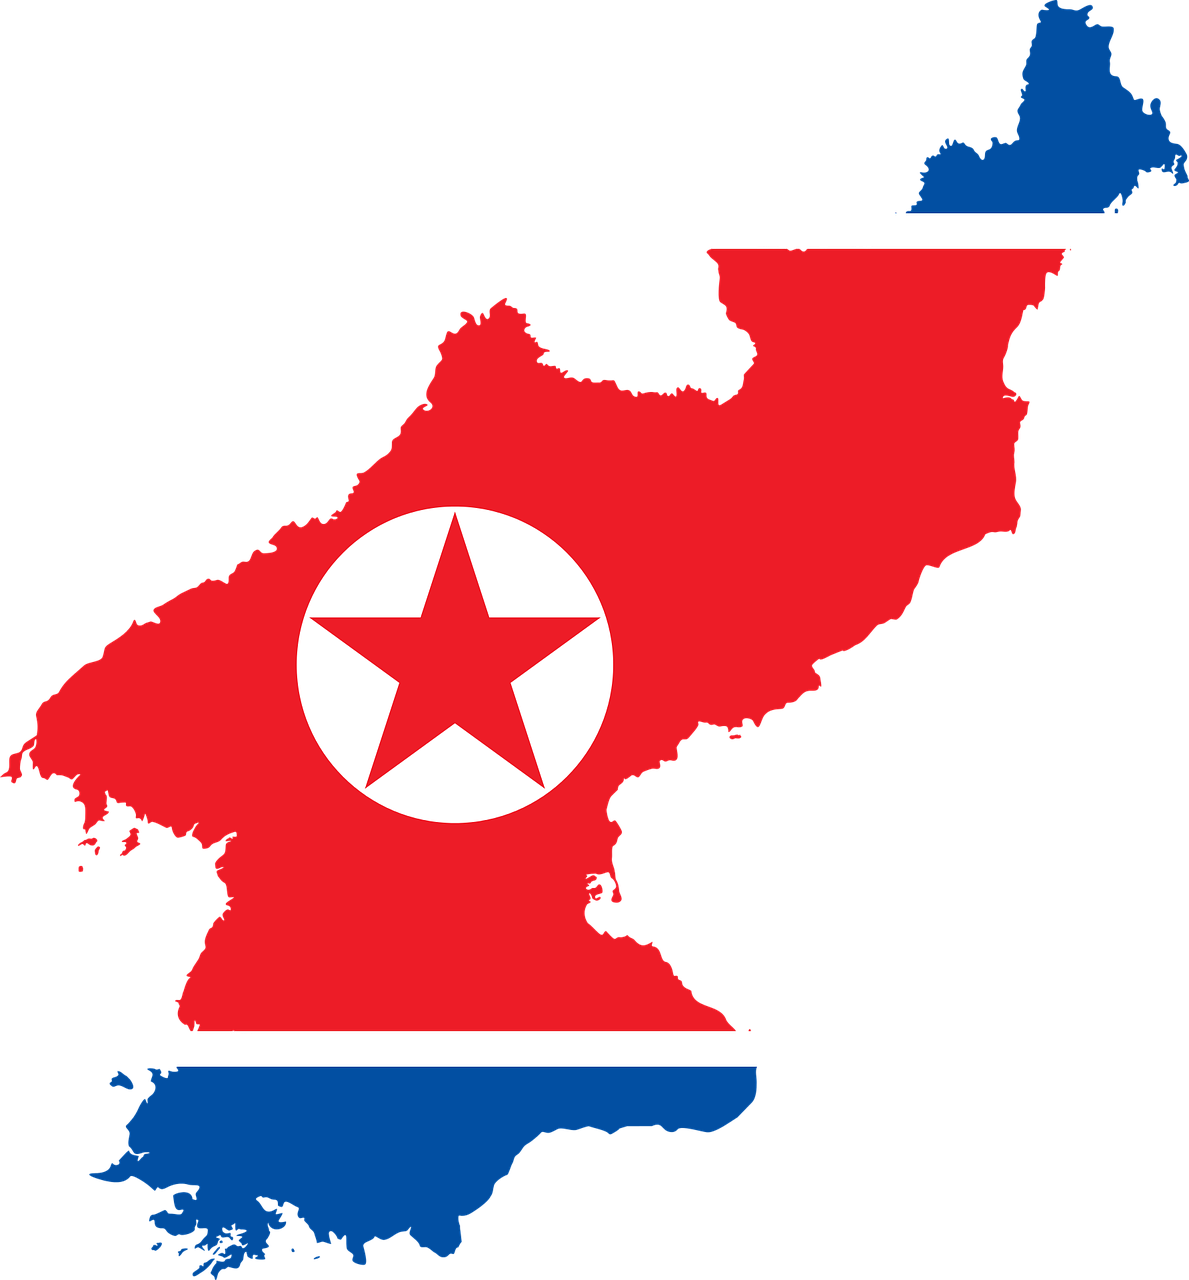 North Korean largest military force in the world.